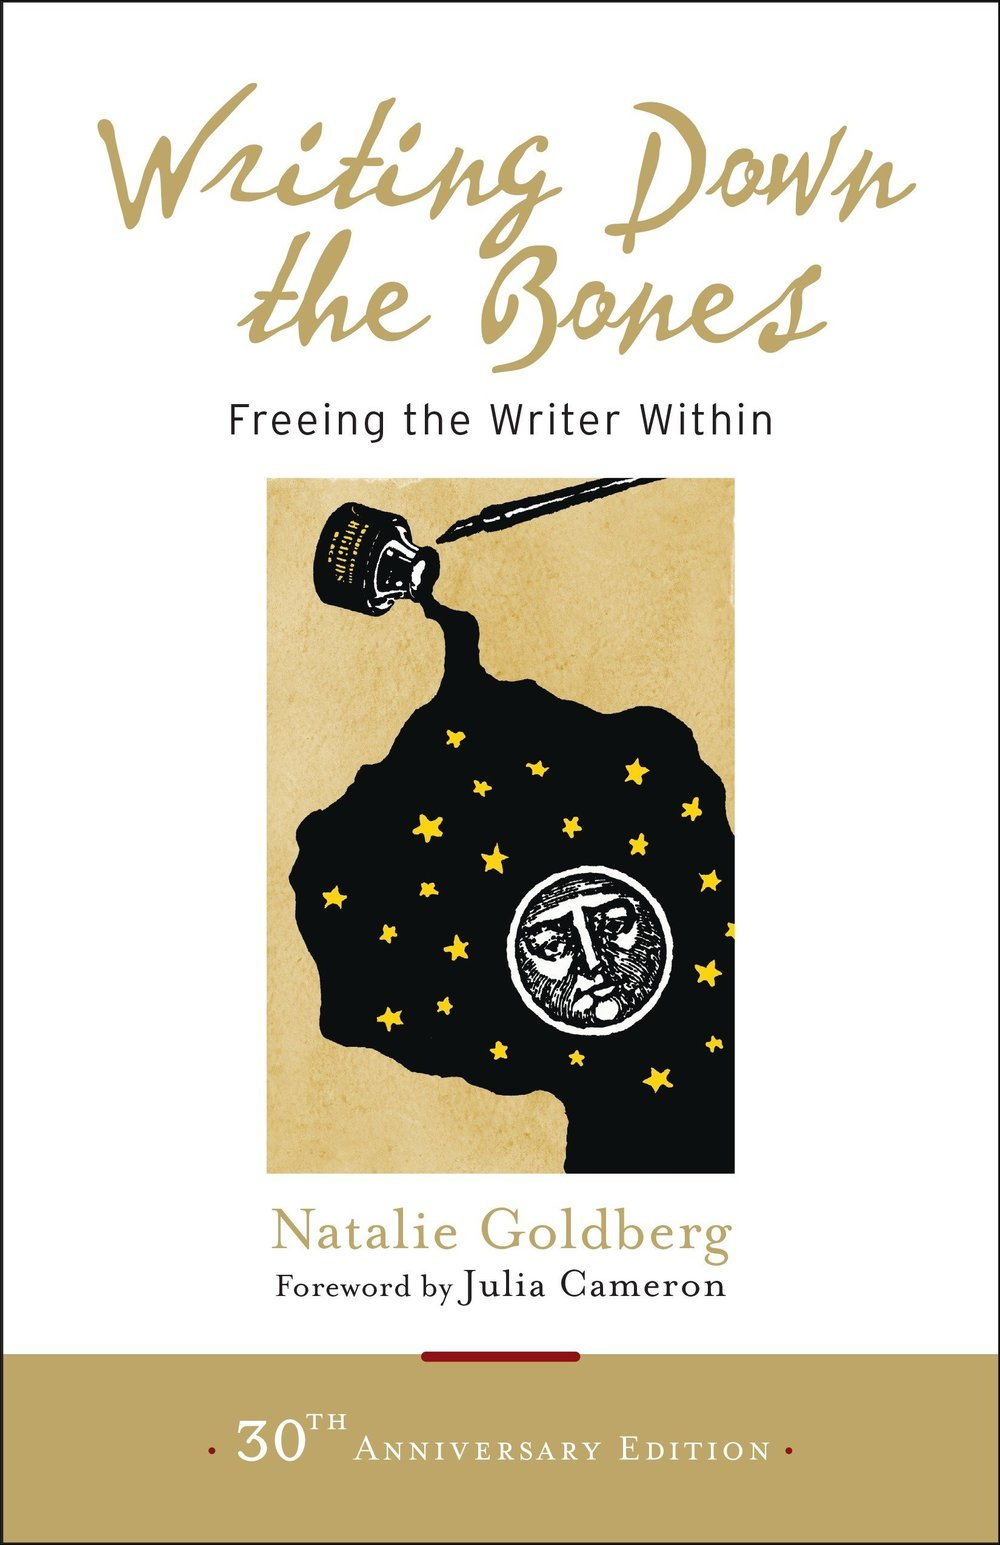 writing down the bones by natalie goldberg.jpg